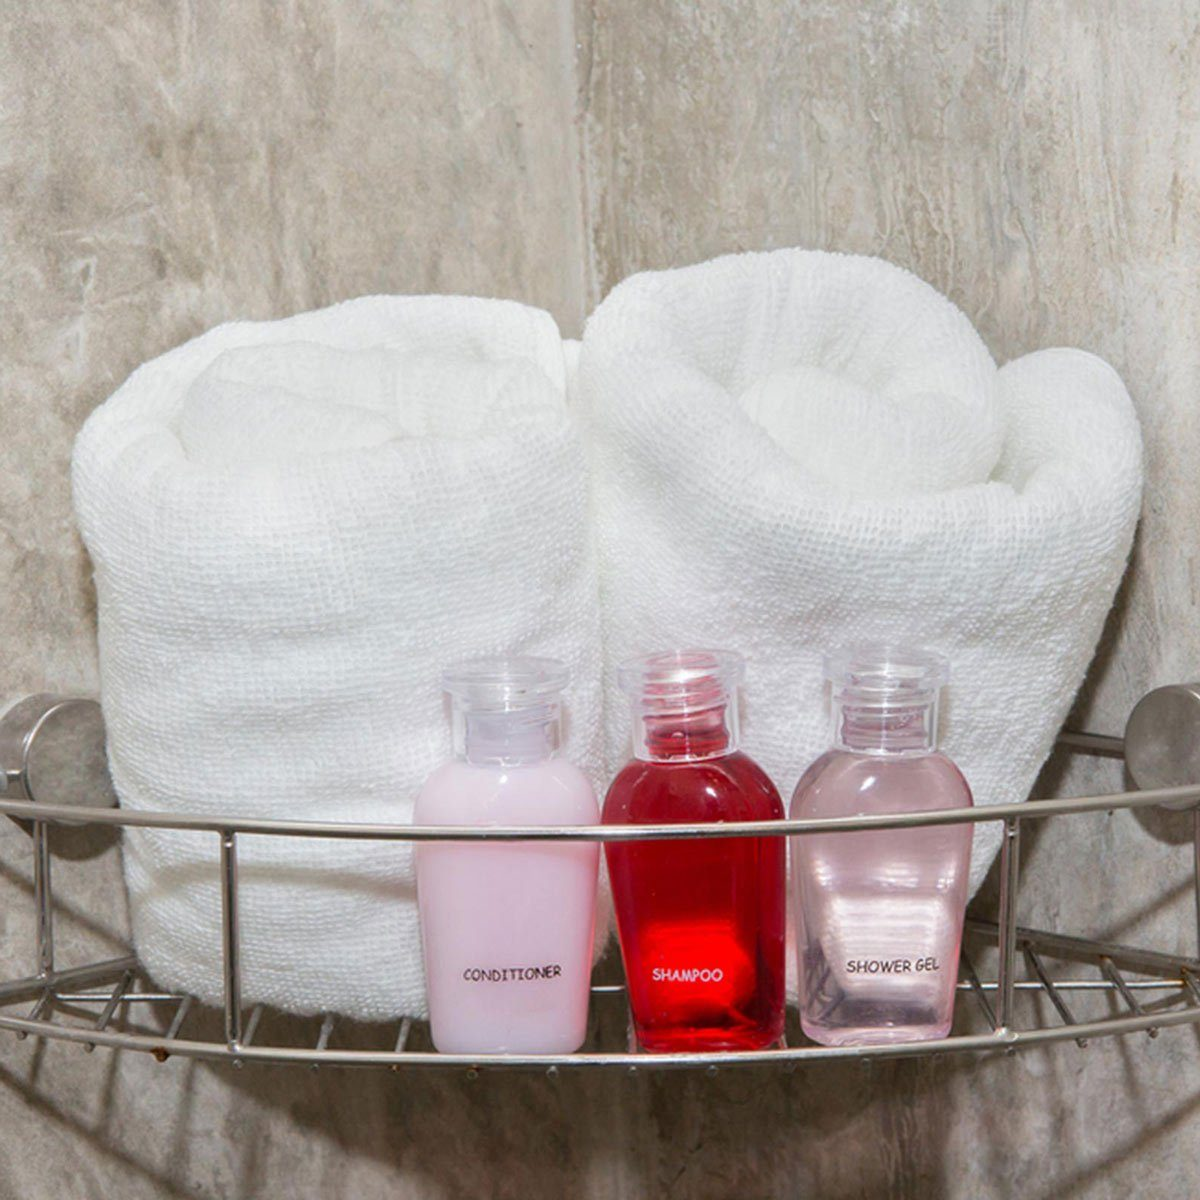 Shower caddy with soap, shampoo and two towels